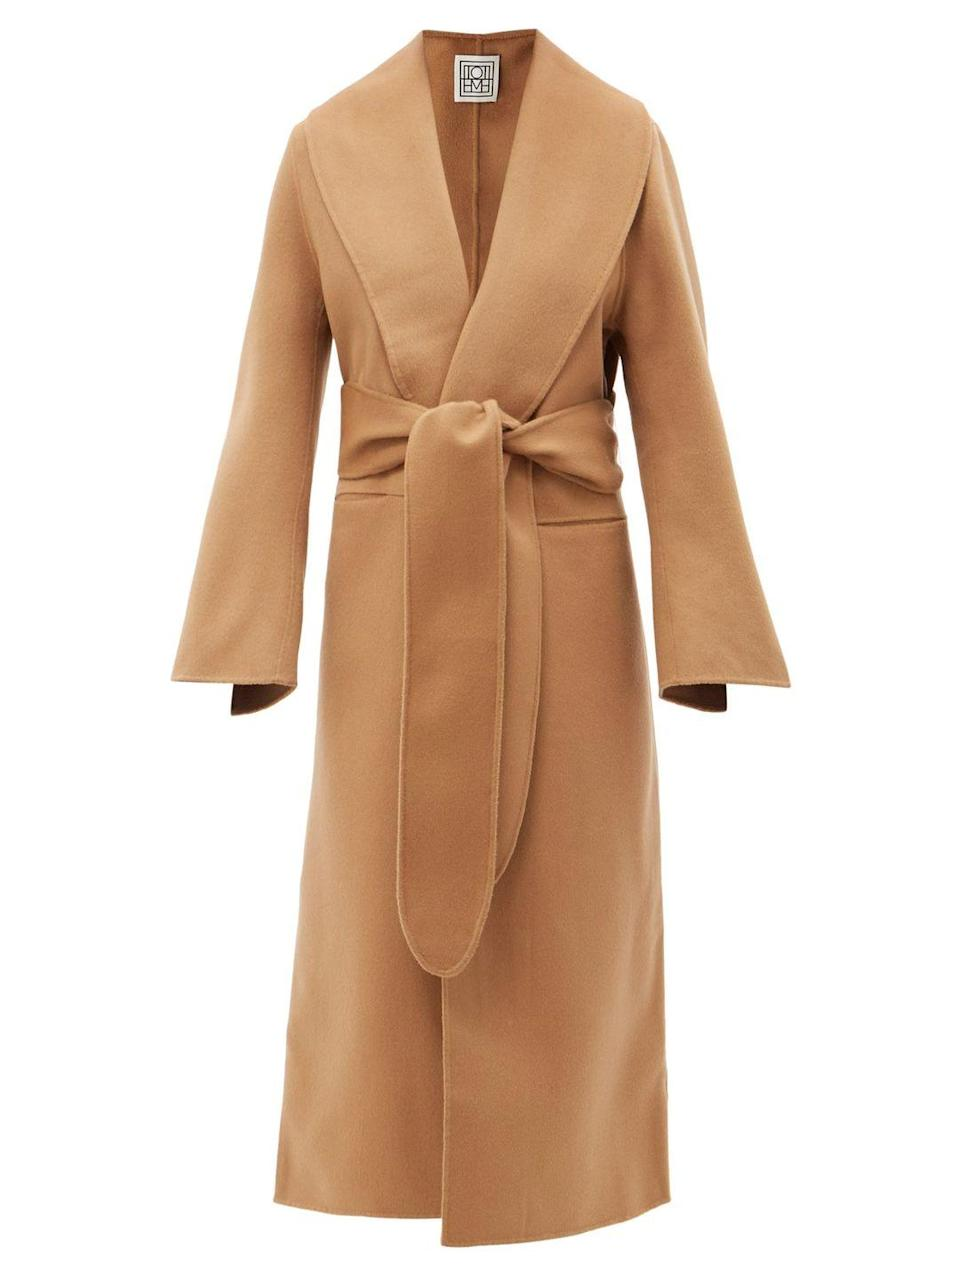 """<p><a class=""""link rapid-noclick-resp"""" href=""""https://www.matchesfashion.com/products/Tot%C3%AAme-Flared-sleeve-belted-wool-coat-1434677"""" rel=""""nofollow noopener"""" target=""""_blank"""" data-ylk=""""slk:SHOP NOW"""">SHOP NOW </a></p><p>The appeal of the wrap coat is in its relaxed luxury, so the more similarities to a robe the better. With extra-wide sash belt, flared sleeves and striking shawl lapels, Totême's is perfect.</p><p>Flared-sleeve Belted Wool Coat, £800, Totême</p>"""